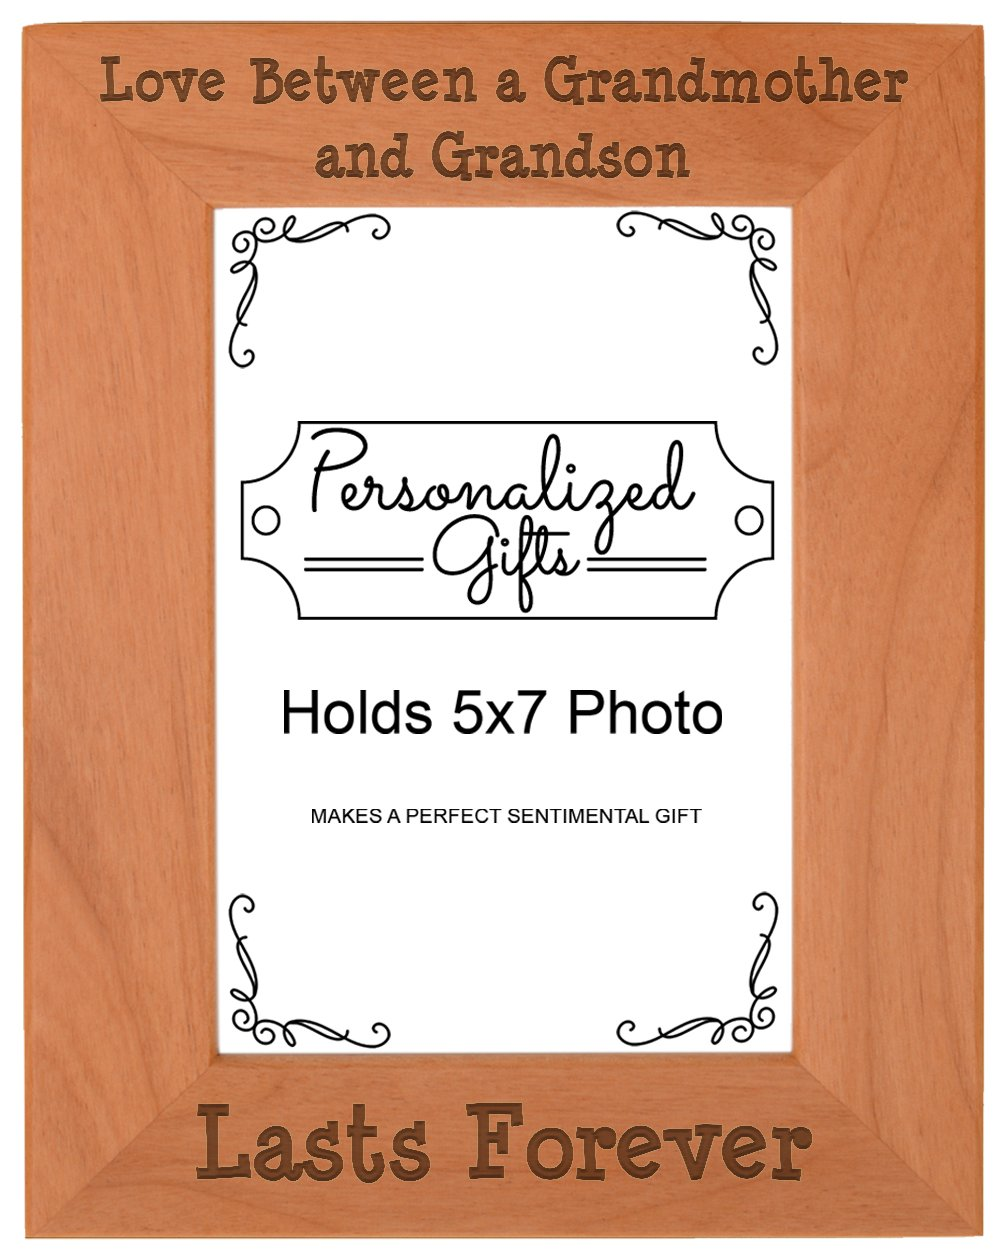 First Time Grandma Gifts Love Between a Grandmother Grandson Lasts Forever Birthday Gifts Grandma Natural Wood Engraved 5x7 Portrait Picture Frame Wood